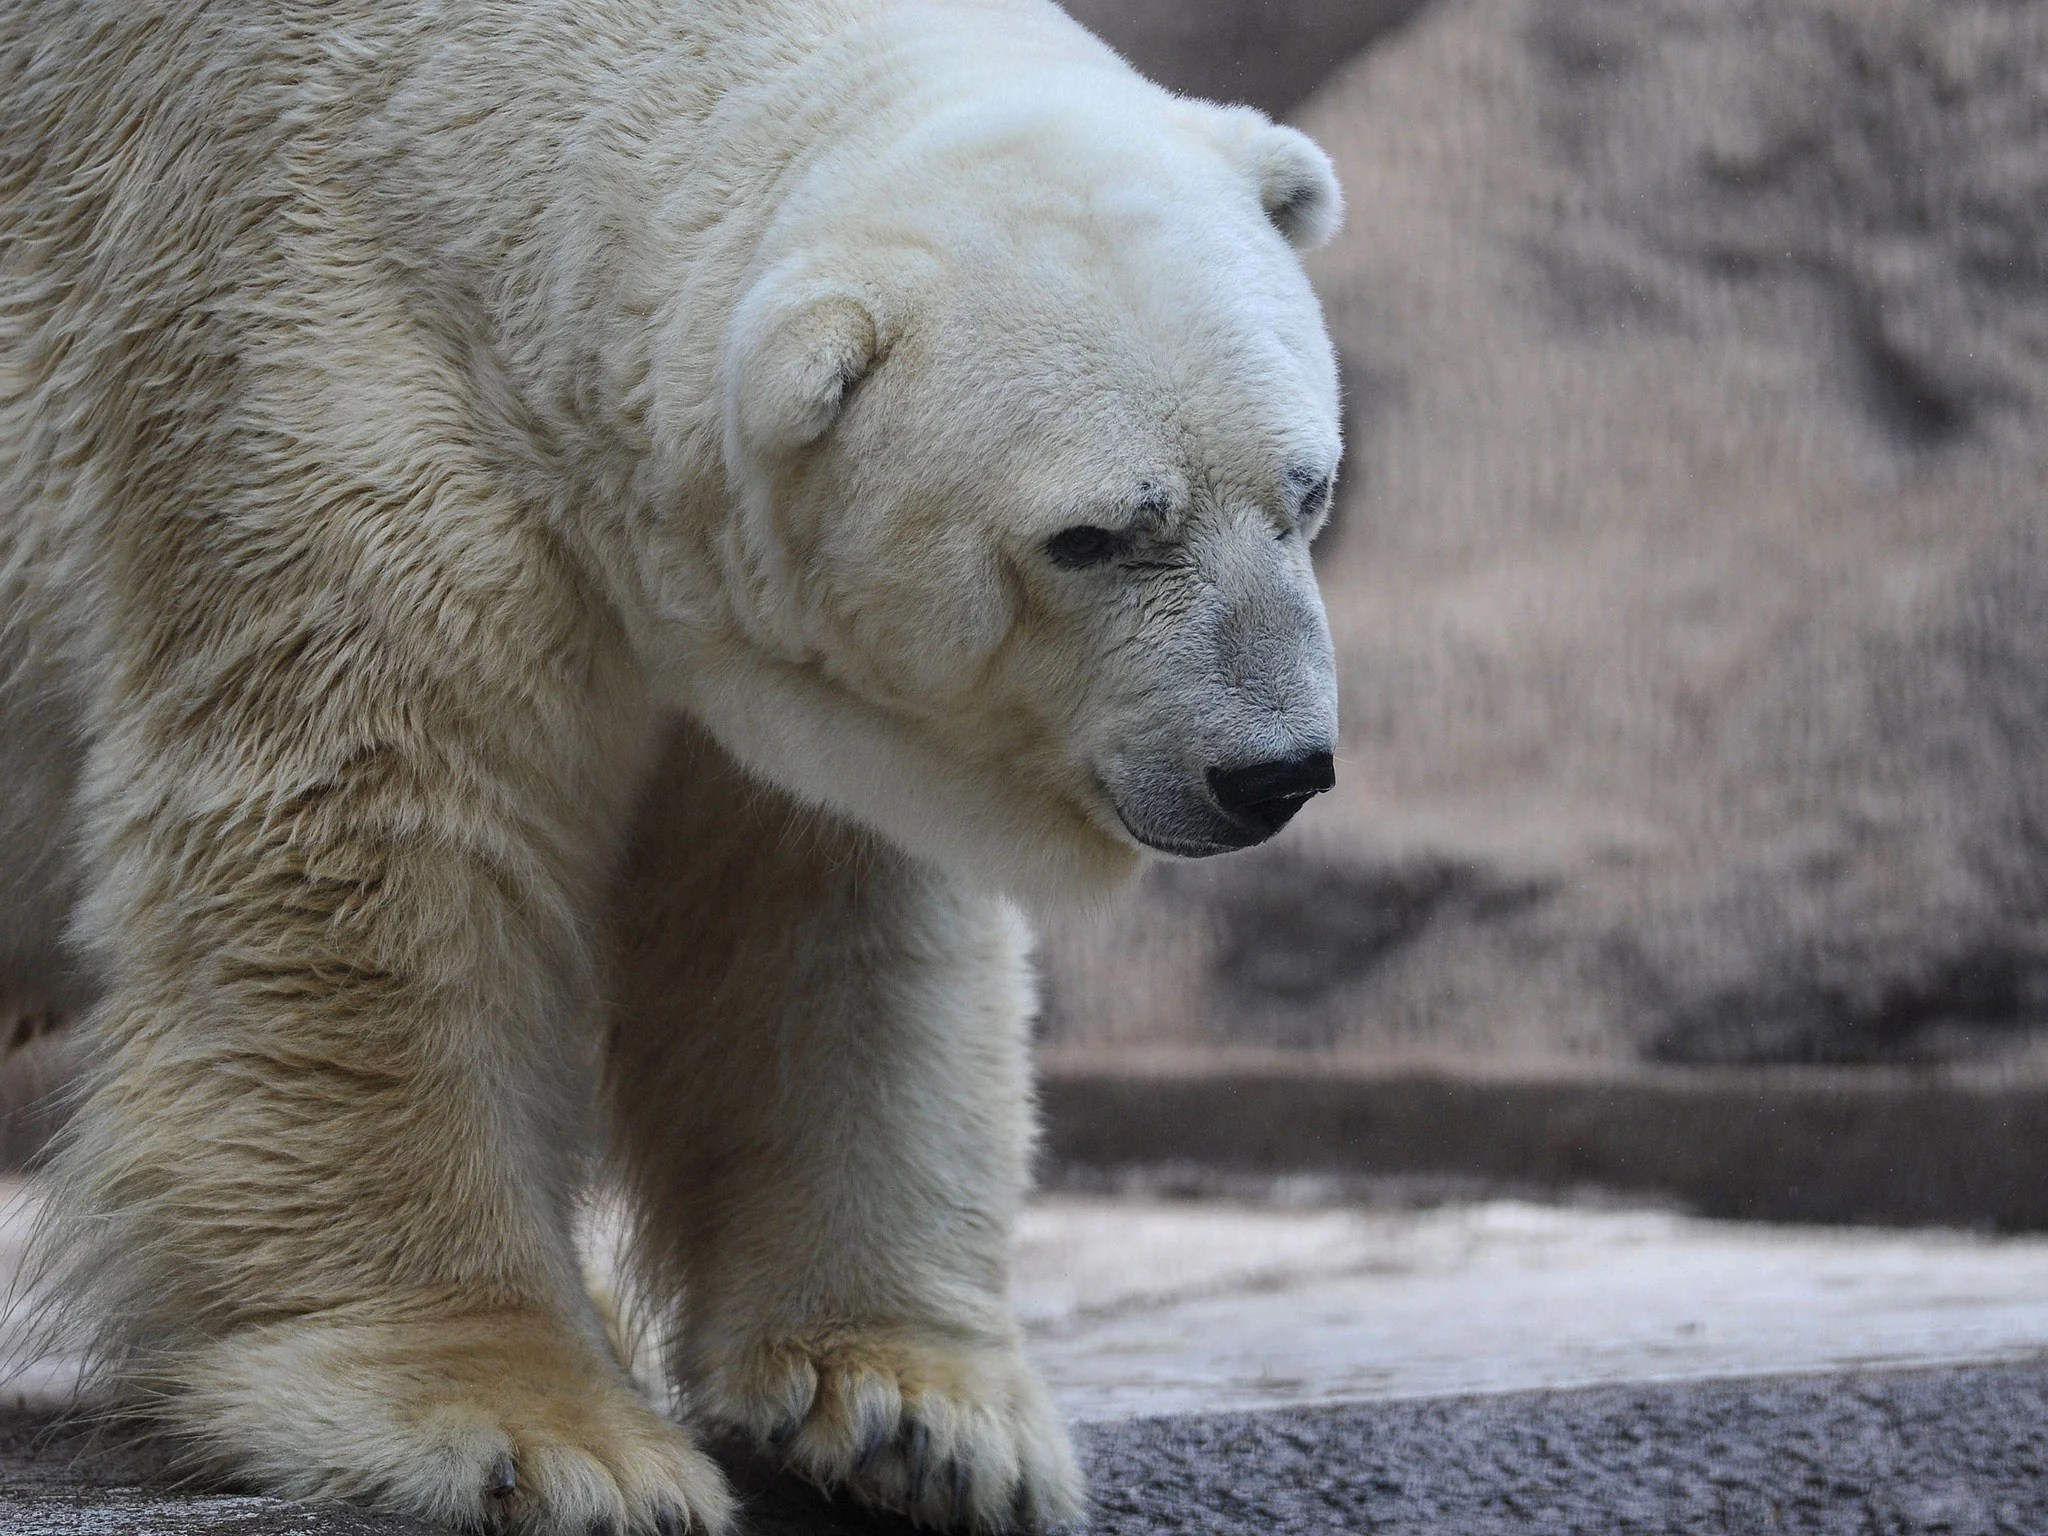 Image of: Animal Cruelty Arturos Home At Mendoza Zoo The Independent Petition To Save Arturo The worlds Saddest Animal